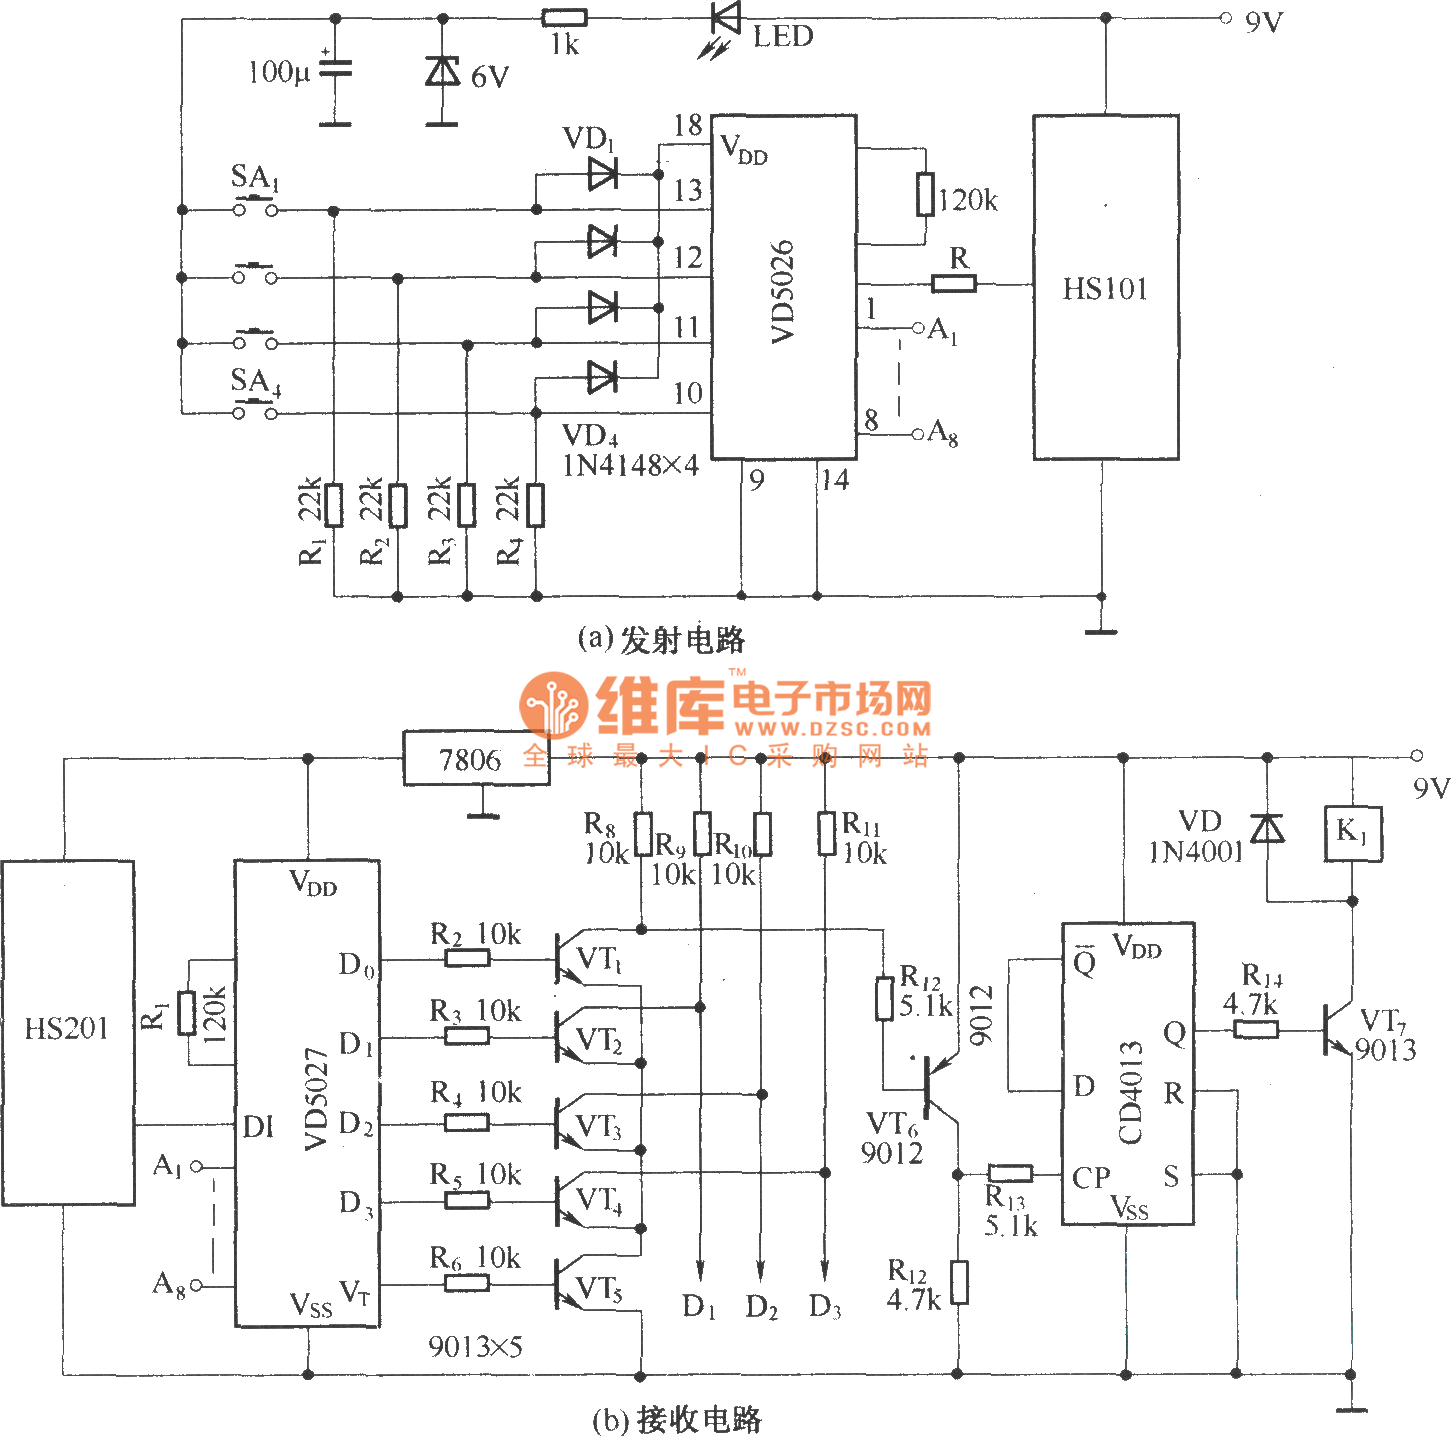 Composed Of Hs101 Hs201 4 Channels Remote Control Switch Circuit Radio Frequency Controlcircuit Diagram Seekic